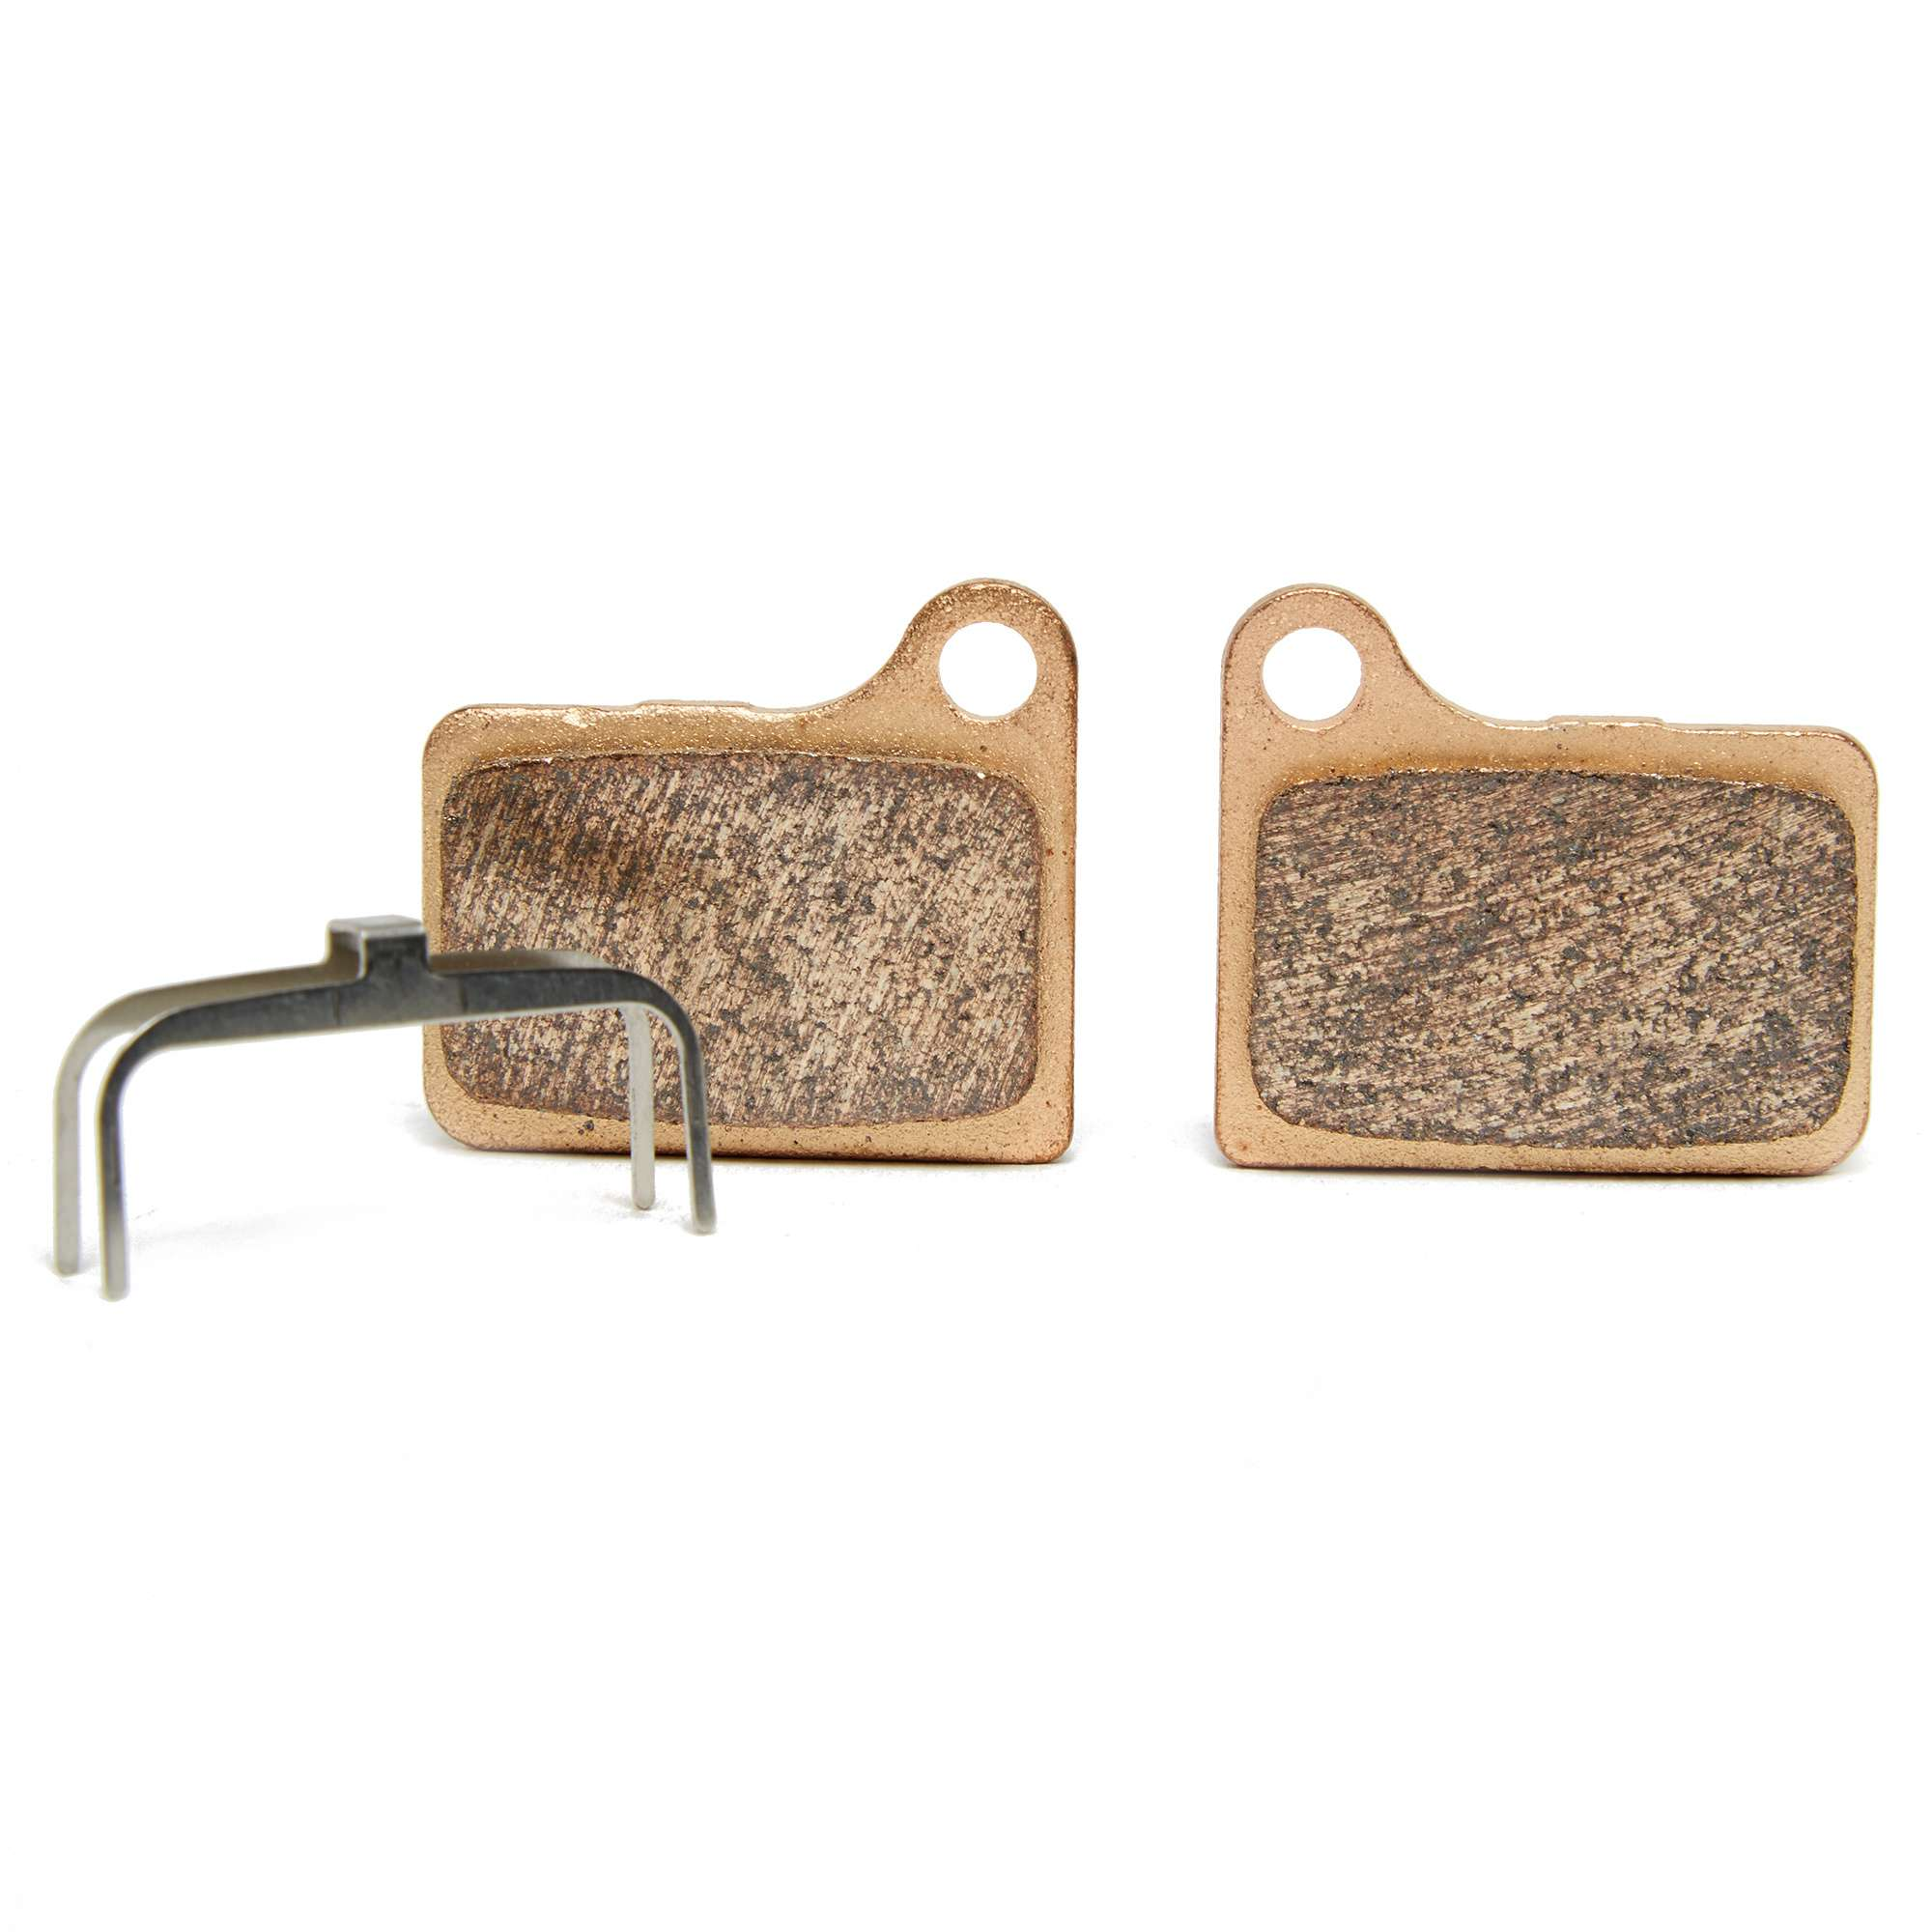 CLARKS Shimano Deore Hydraulic Brake Pads